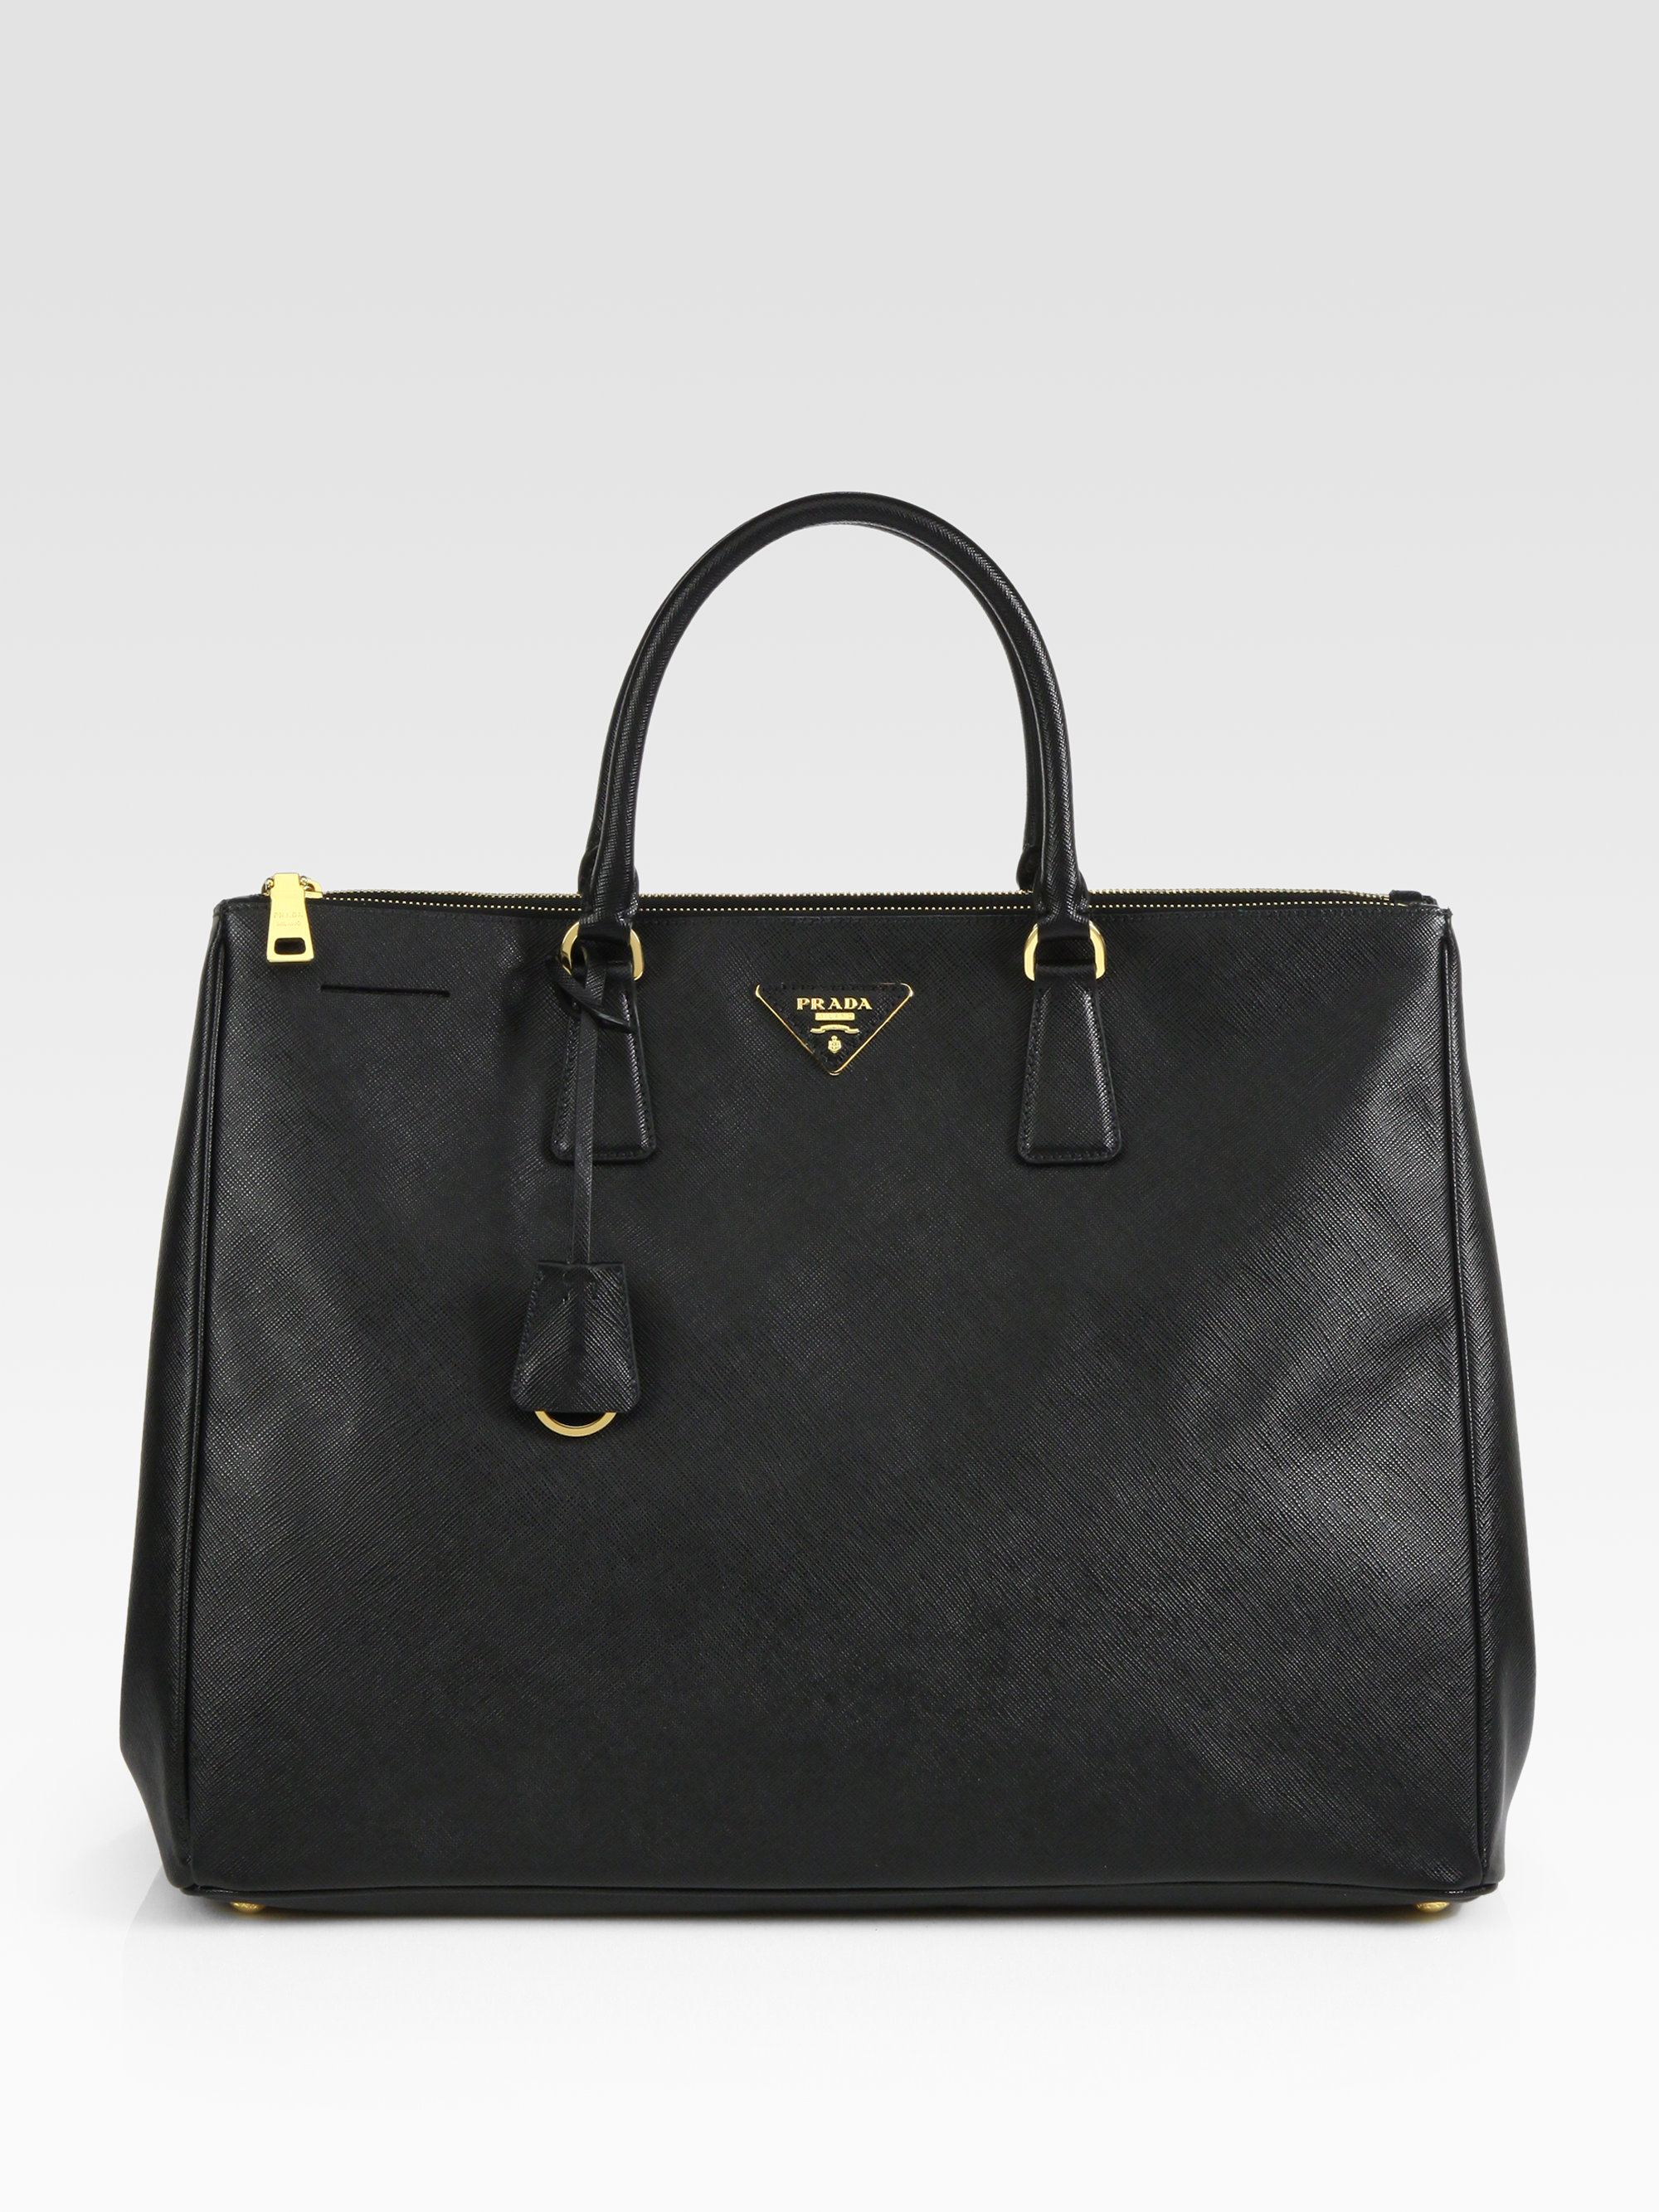 7a9a1b41bc85 ... coupon code lyst prada large saffiano top handle bag in black 1494c  47241